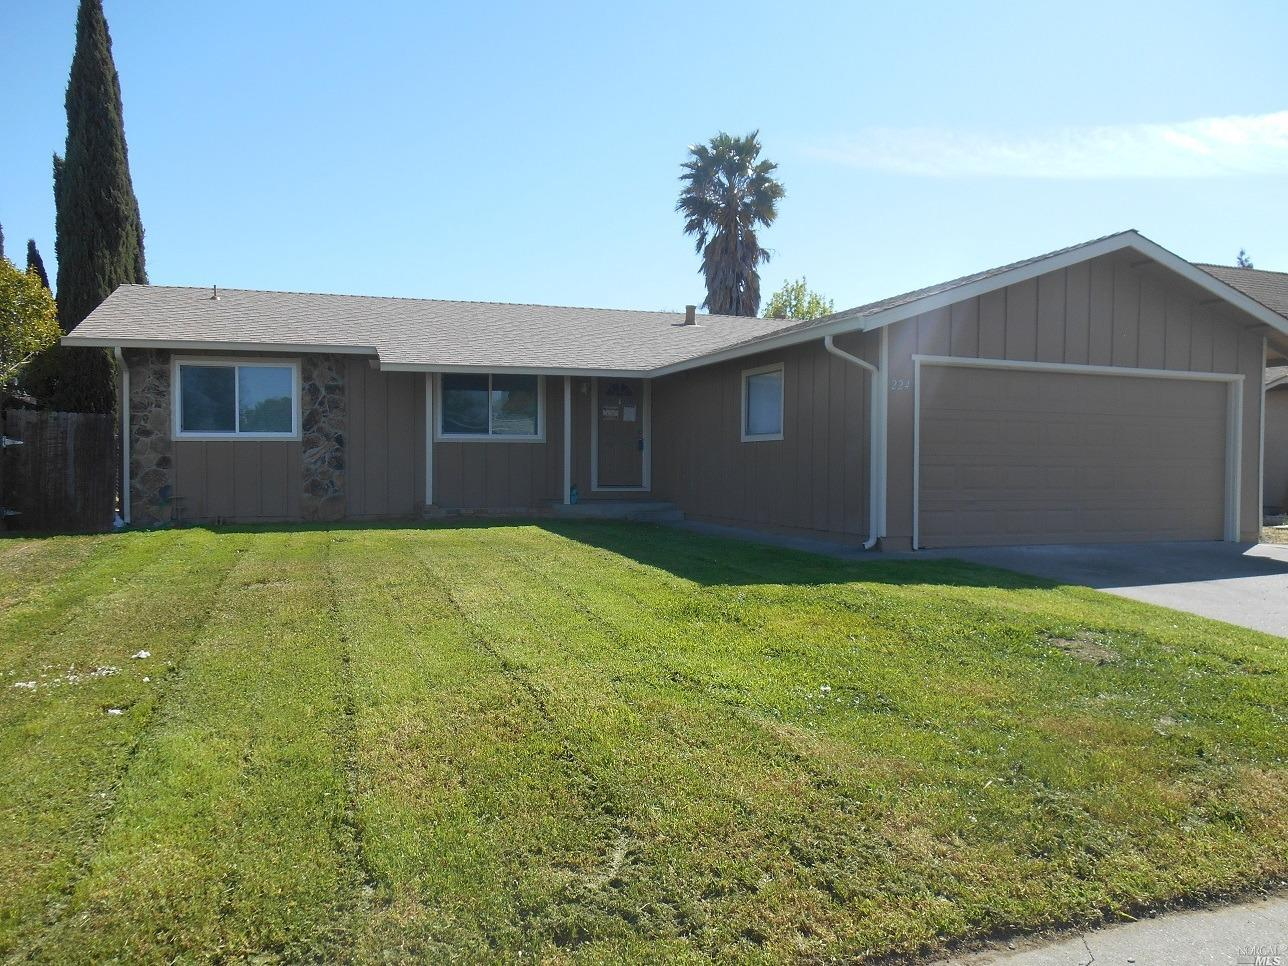 Nicely updated home with new kitchen. New stainless steel appliances and slab granite counters. New